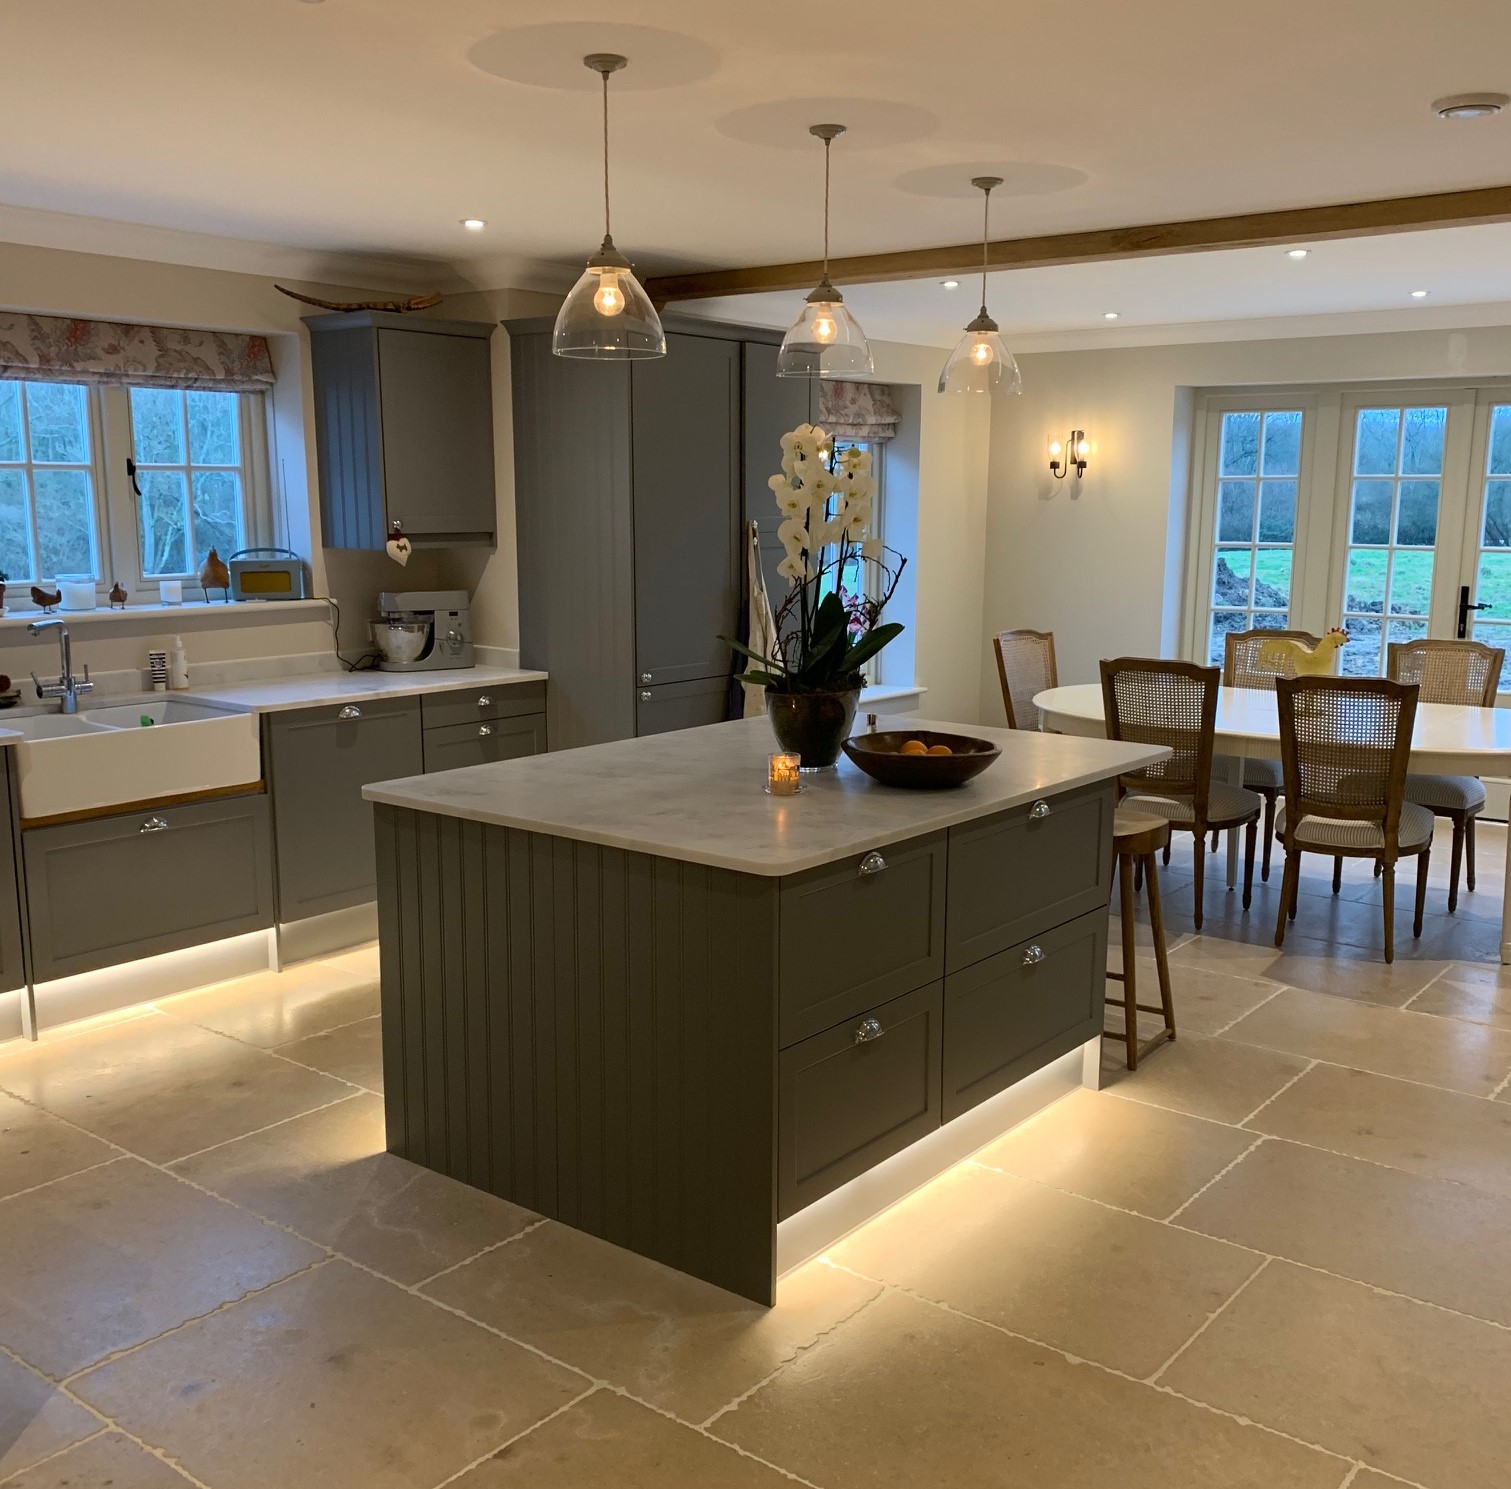 Timber Frame Self Build Homes From Scandia Hus: Scandia-Hus March 2018 Newsletter